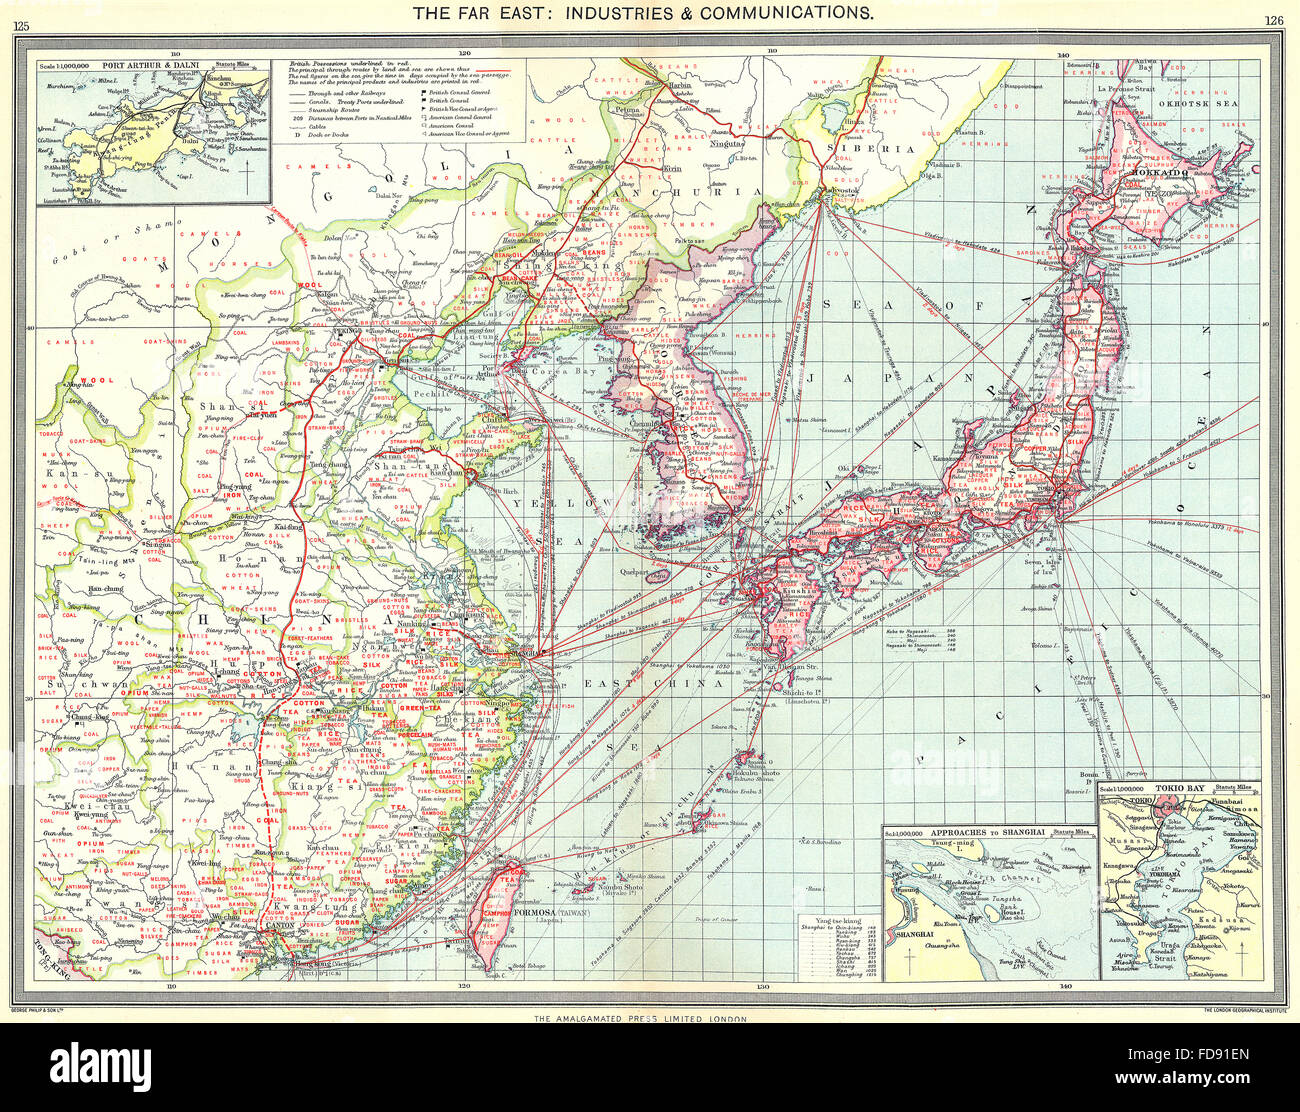 Japan korea china taiwan industry communications tokyo port stock japan korea china taiwan industry communications tokyo port arthur 1907 map gumiabroncs Images